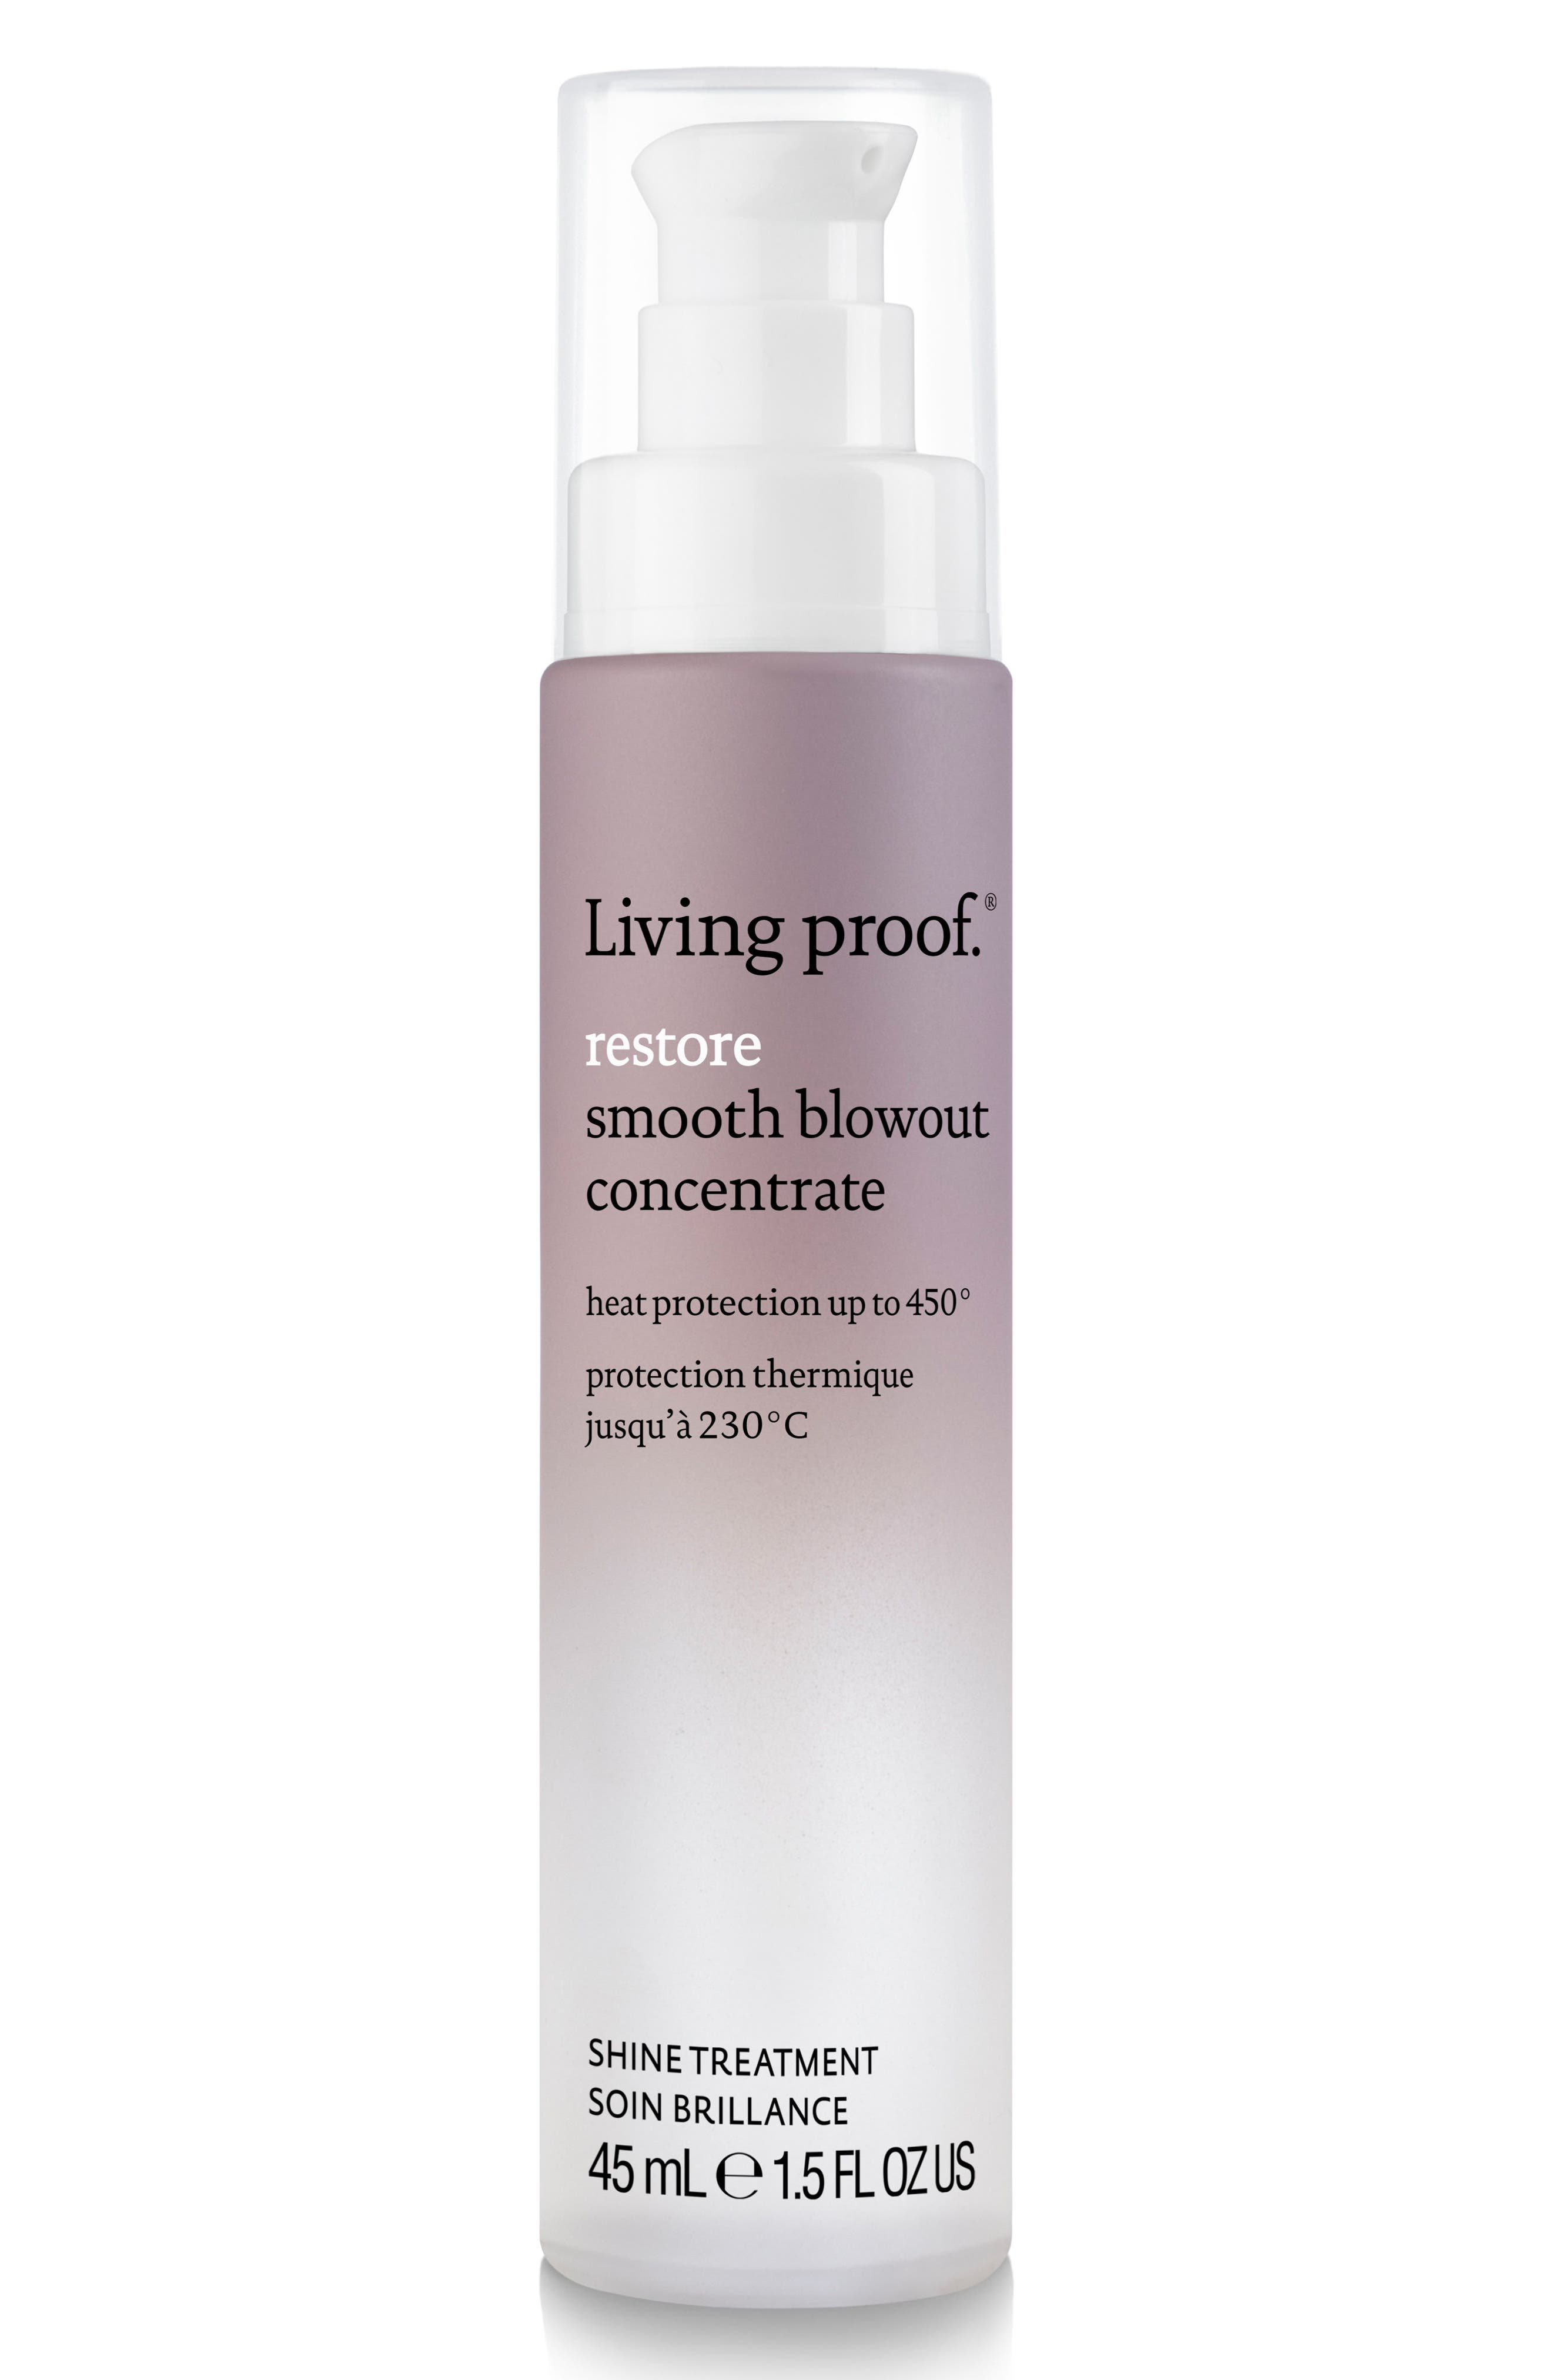 Living proof® Restore Smooth Blowout Concentrate